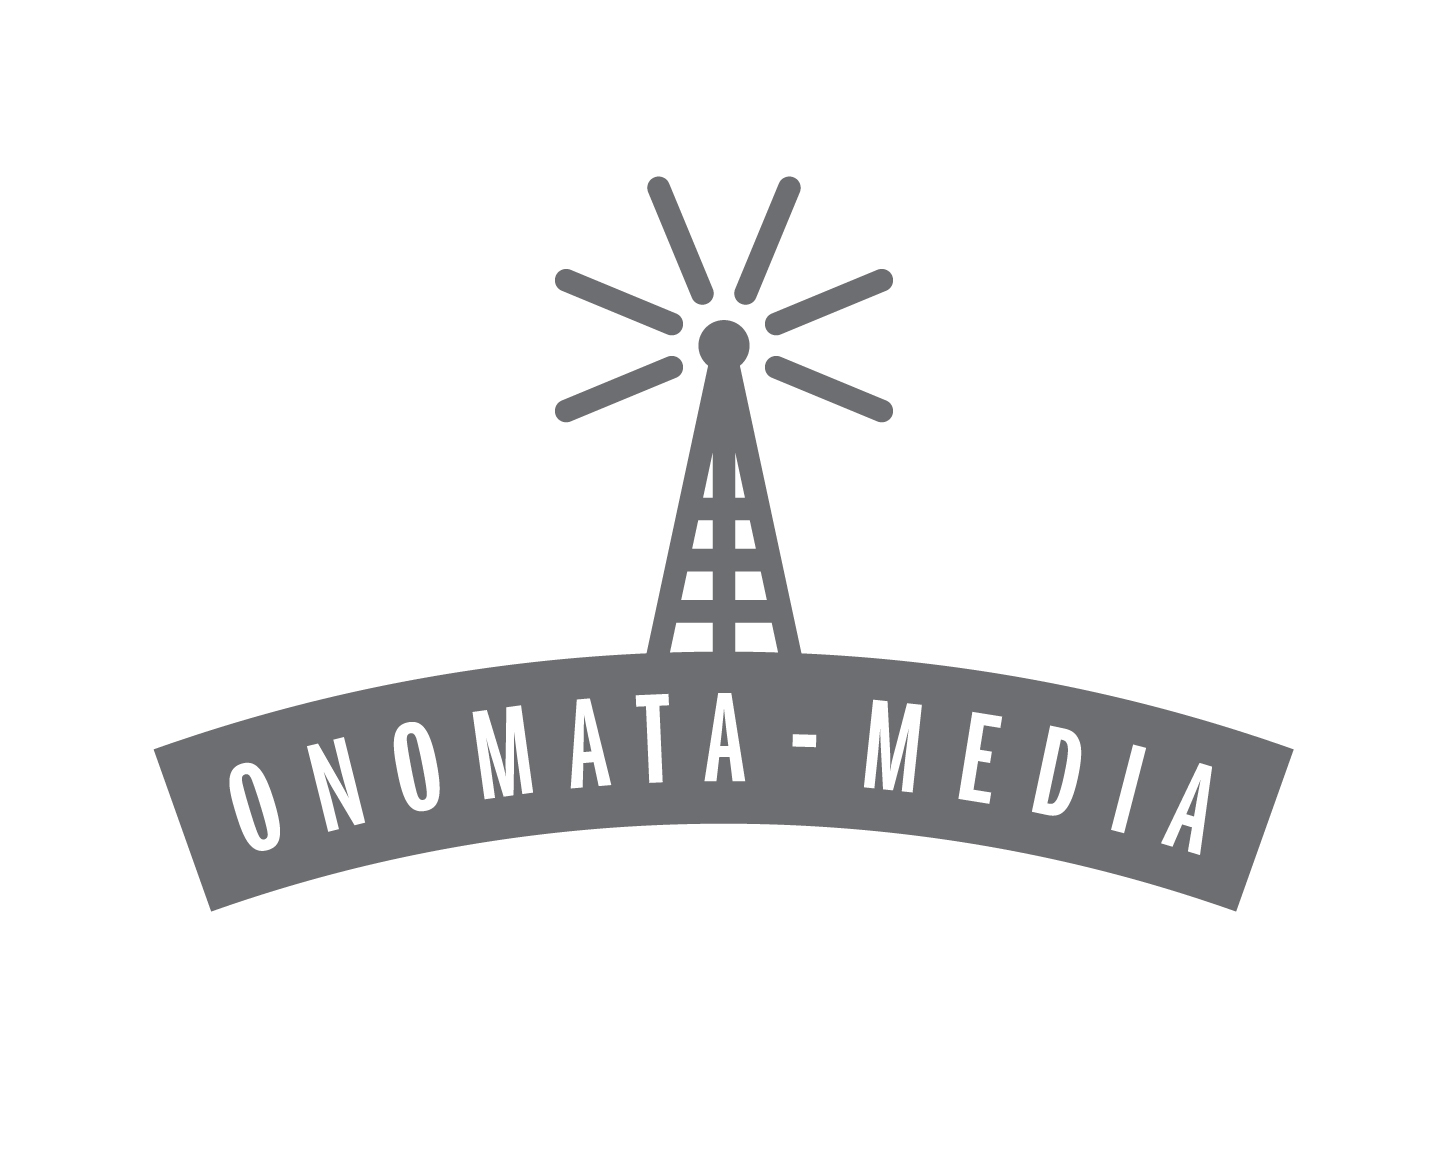 Logo Design, Onomata-Media